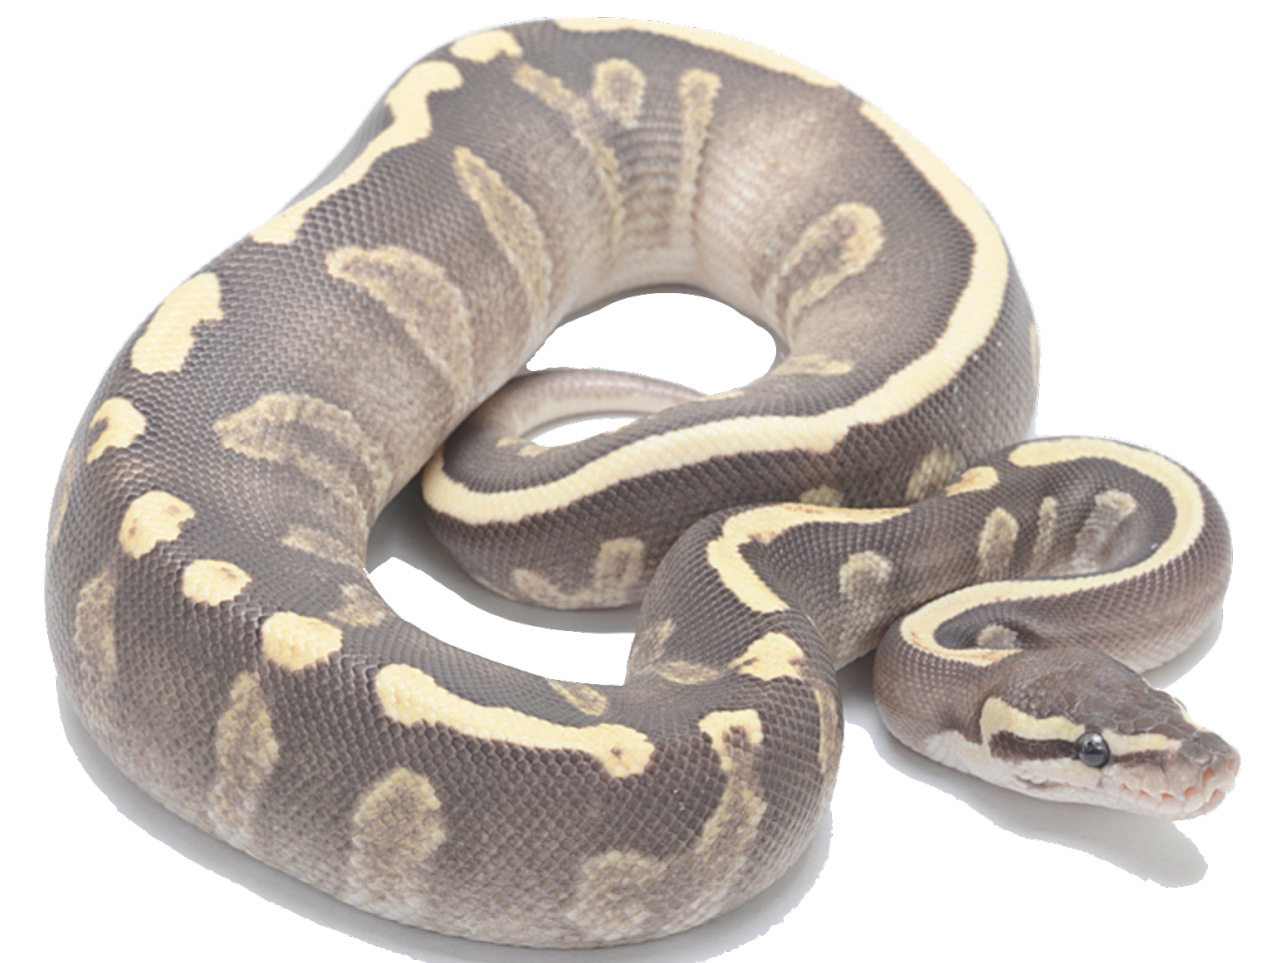 Carpet drawing python snake. Mojave ghi fire morphology